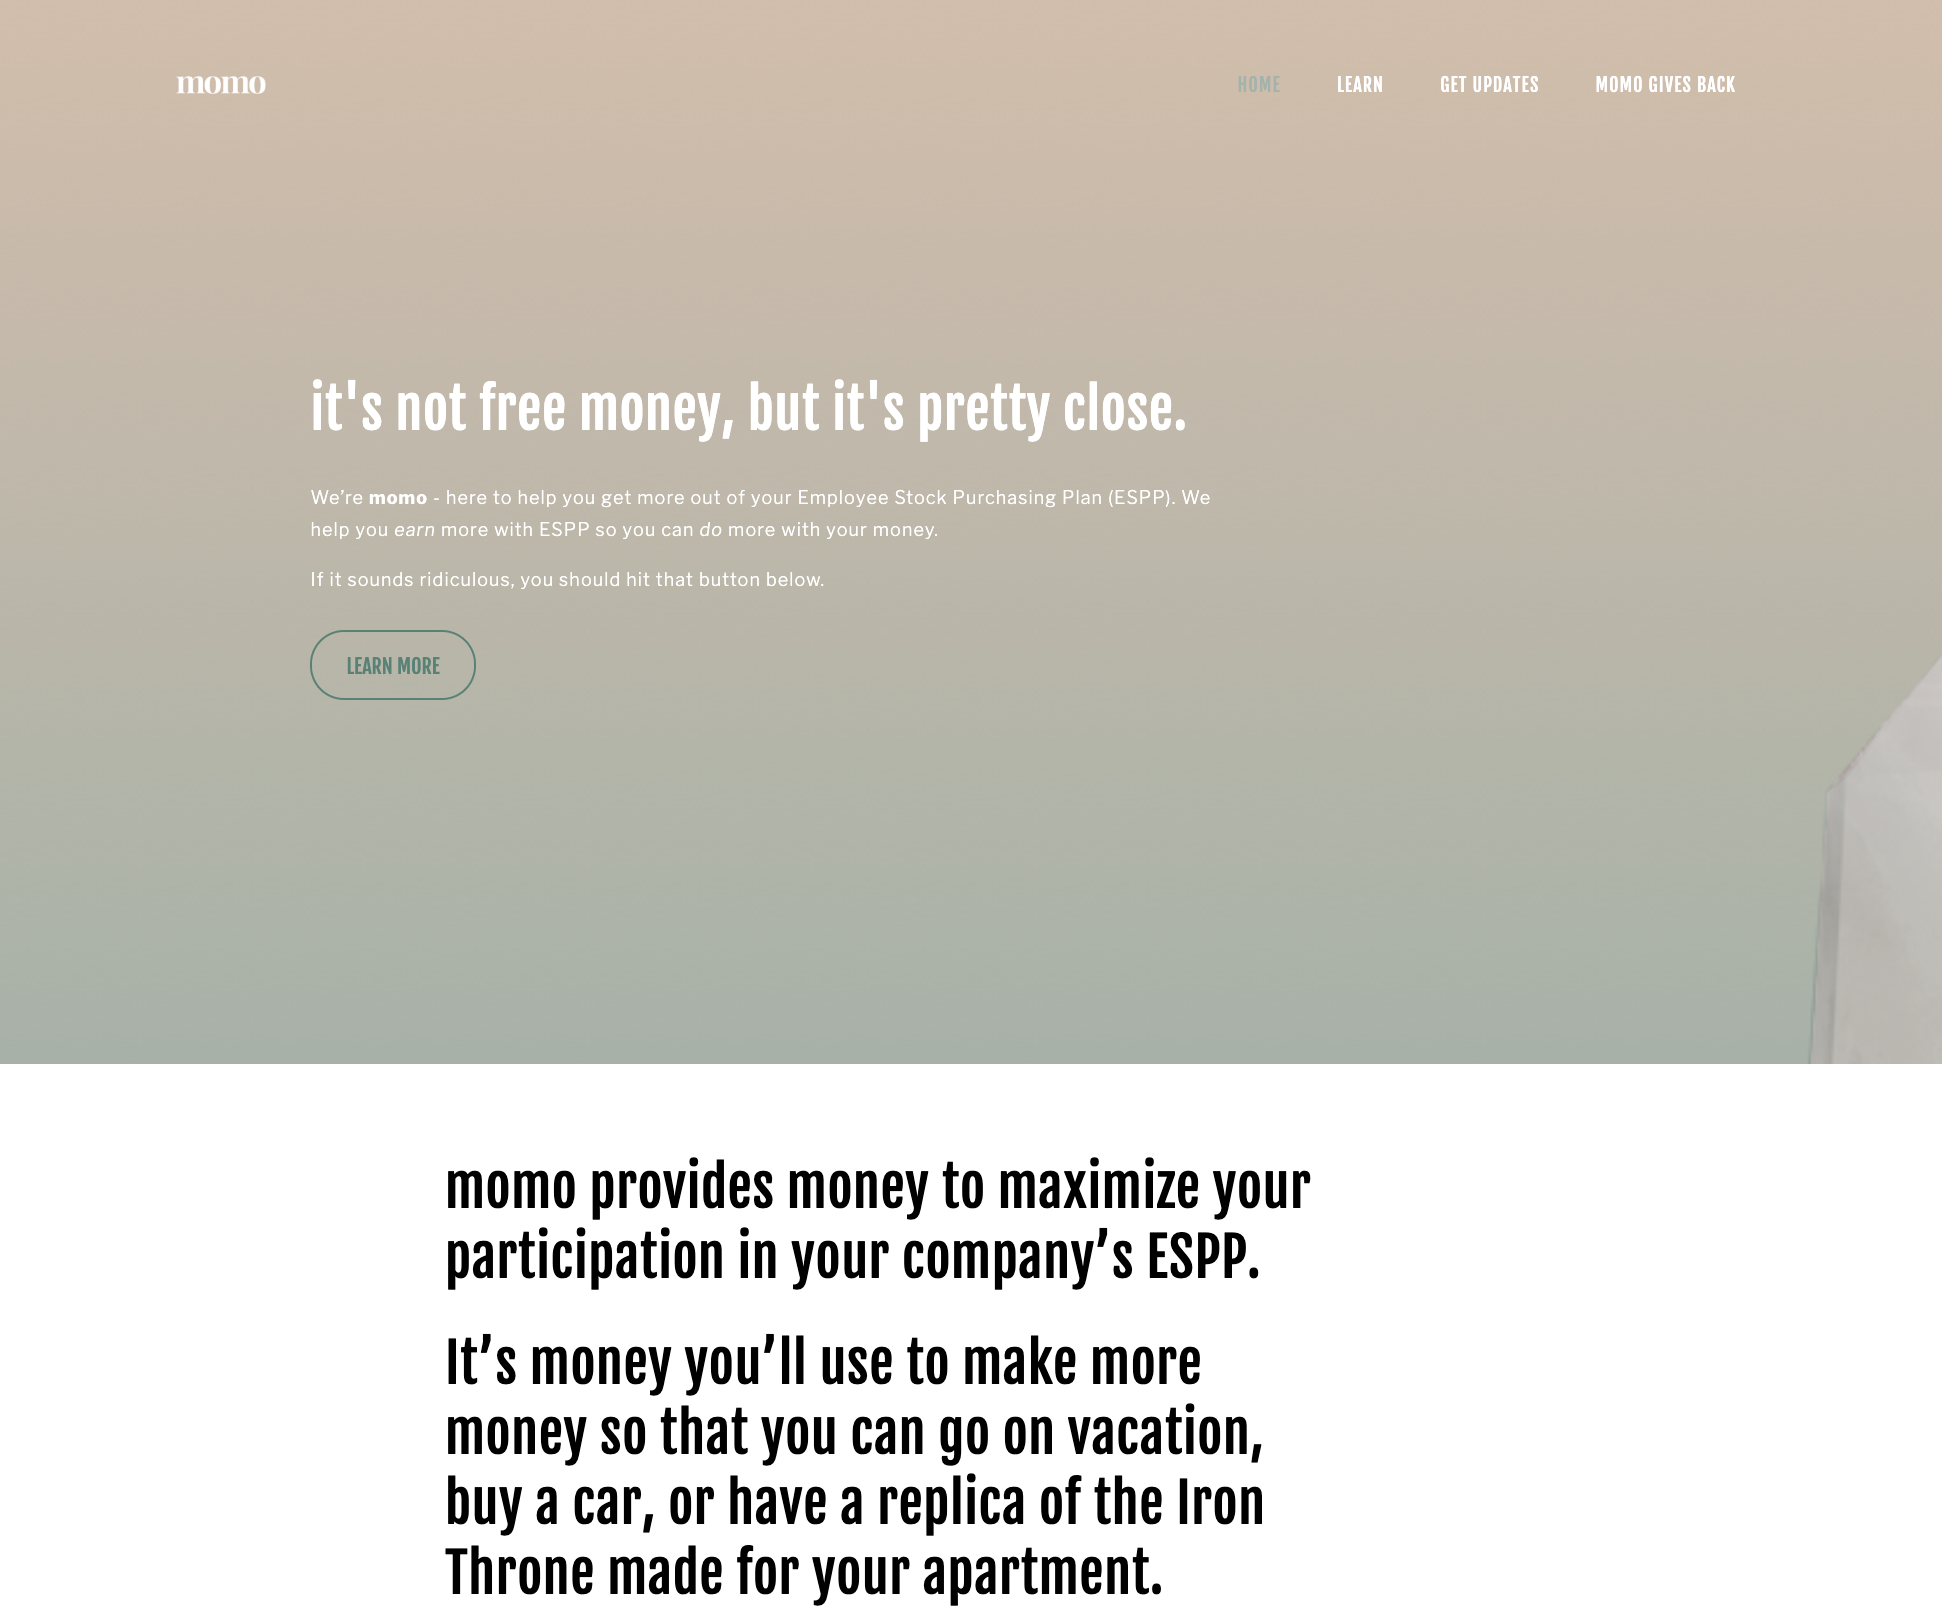 Personal Website - Using the platform of your choice (Squarespace, Wix, etc.) I'll create a website, like this one, that you can easily edit any time you want. I charge a flat fee of $250/site then you'll just have to pay the monthly fee for whatever service you choose (usually $15-$20/month).For an additional $30/page fee, I'll even write and copyedit clever copy for you. :D